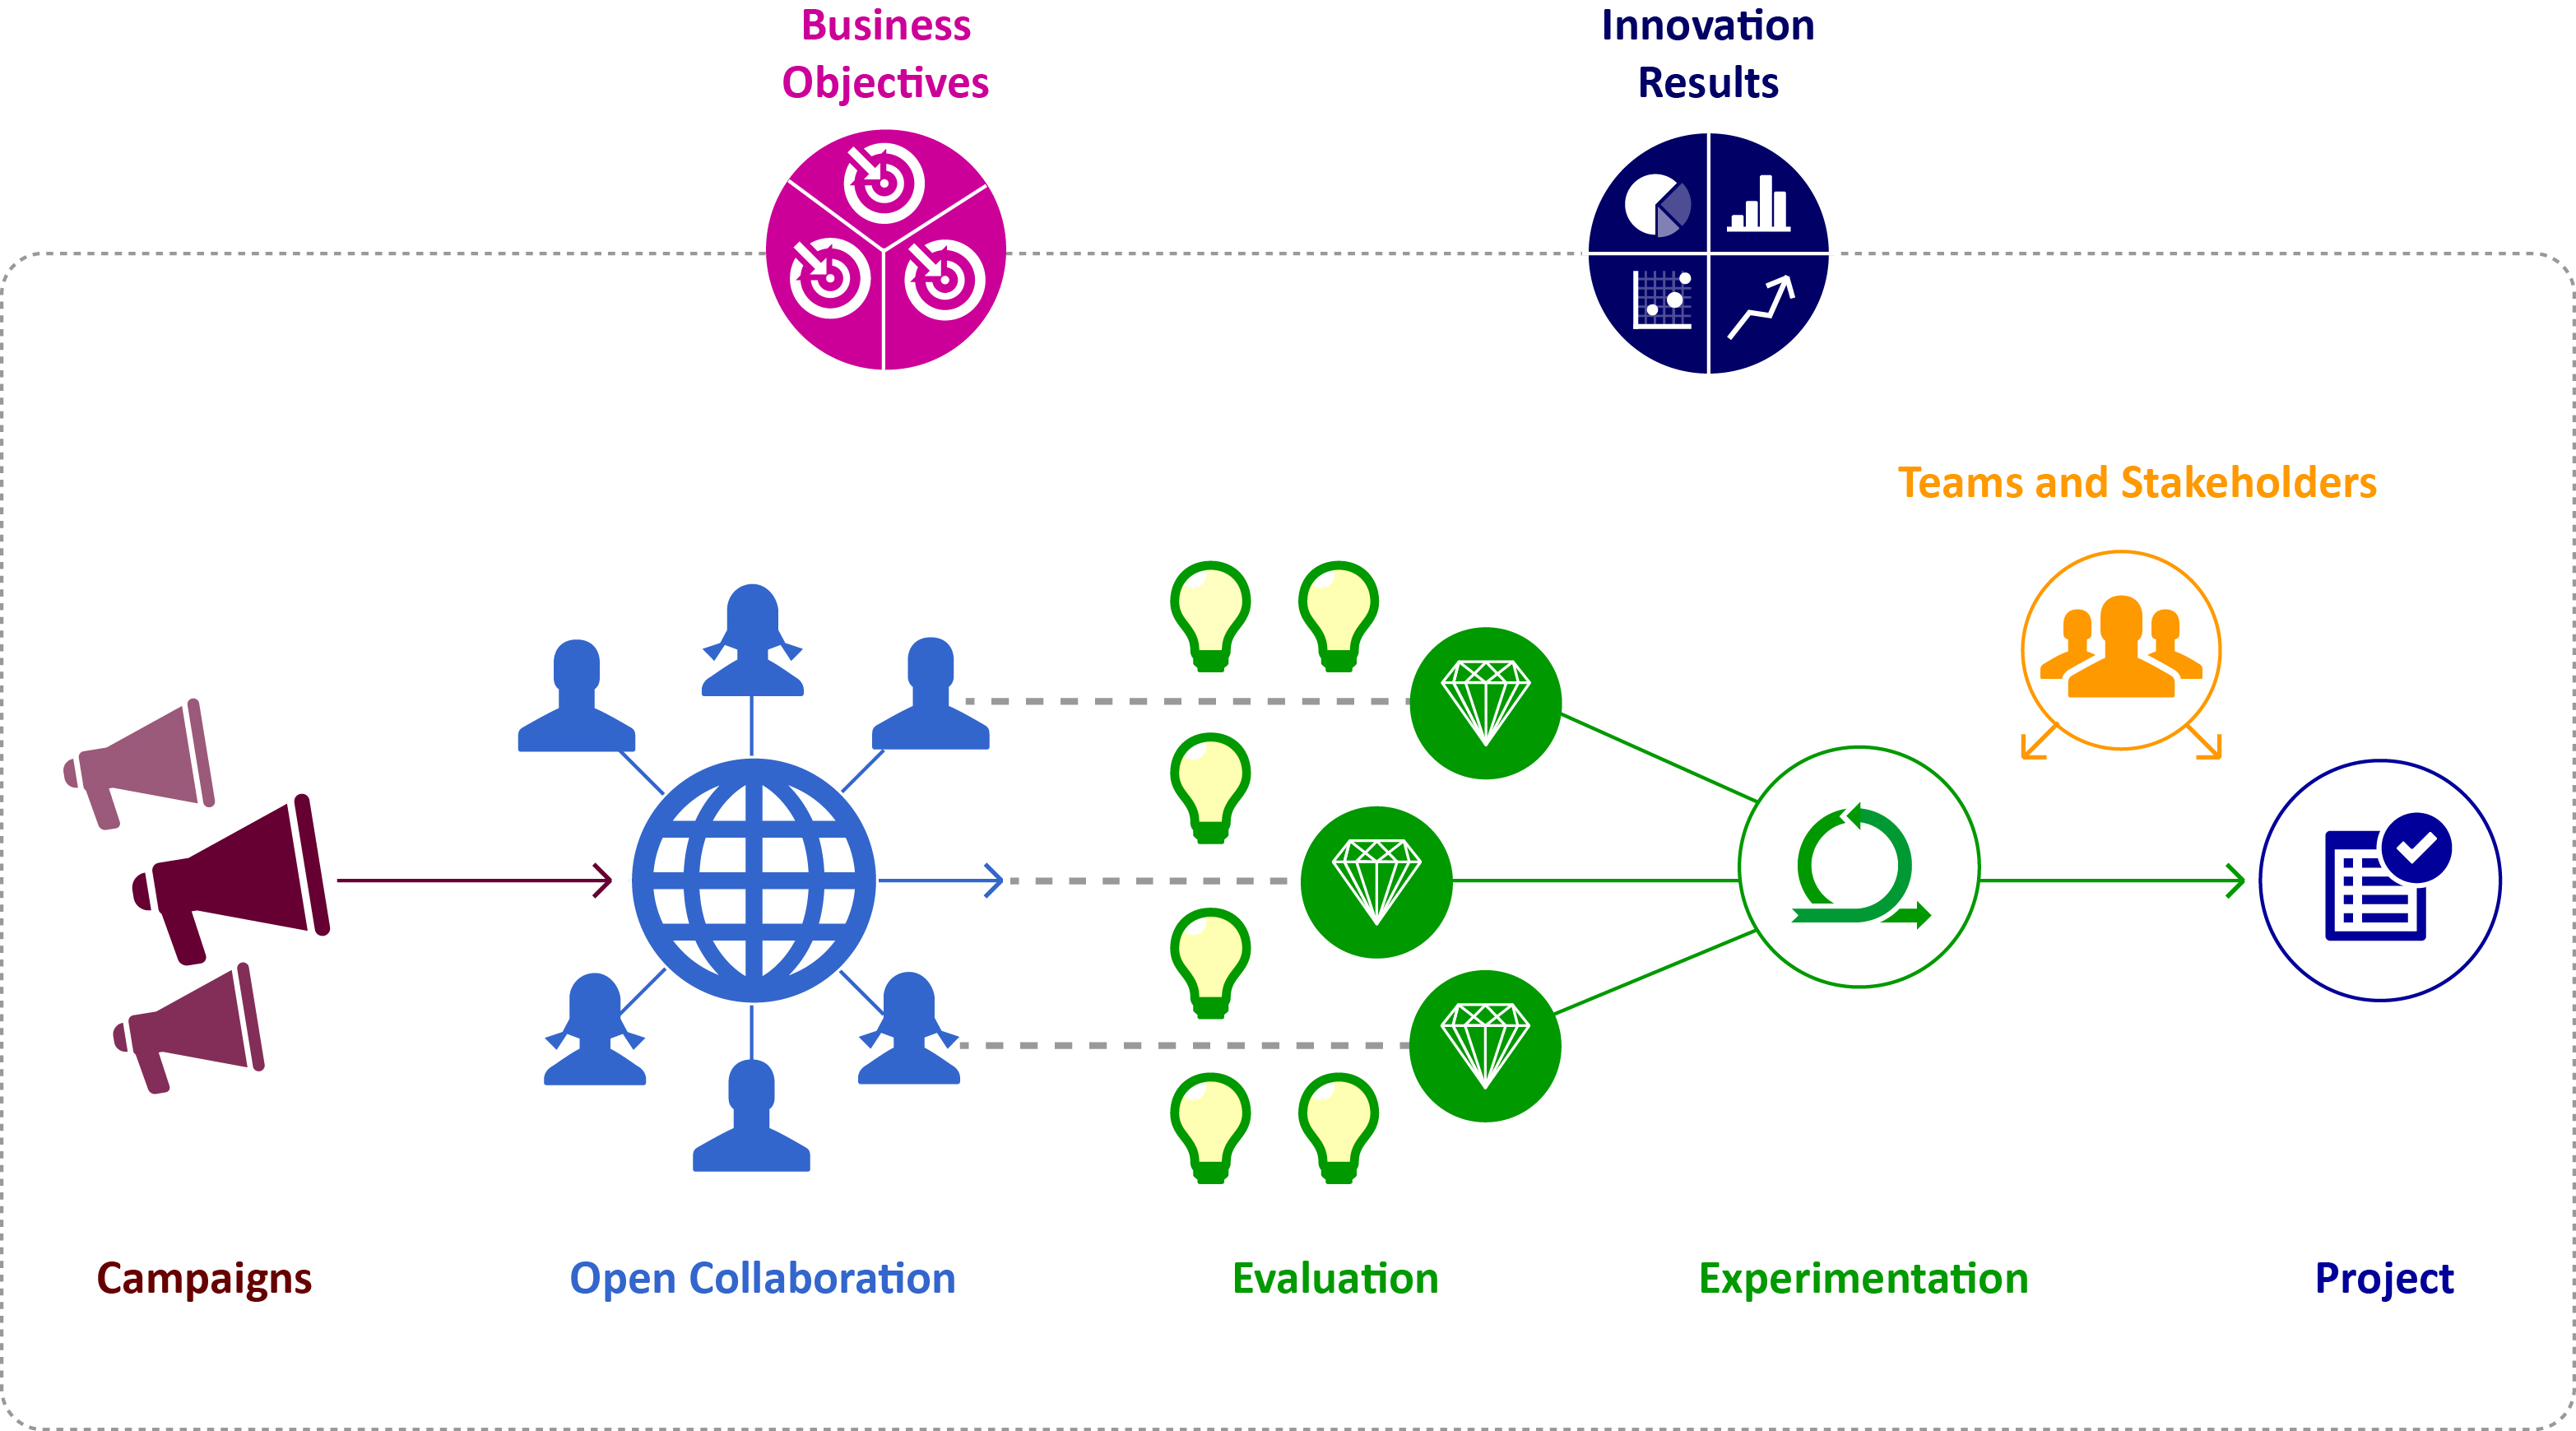 innovation new product development Product and service innovation our innovation experts can help clients improve their innovation functions, including new-product development, research and development, and engineering we advise companies on setting strategy.